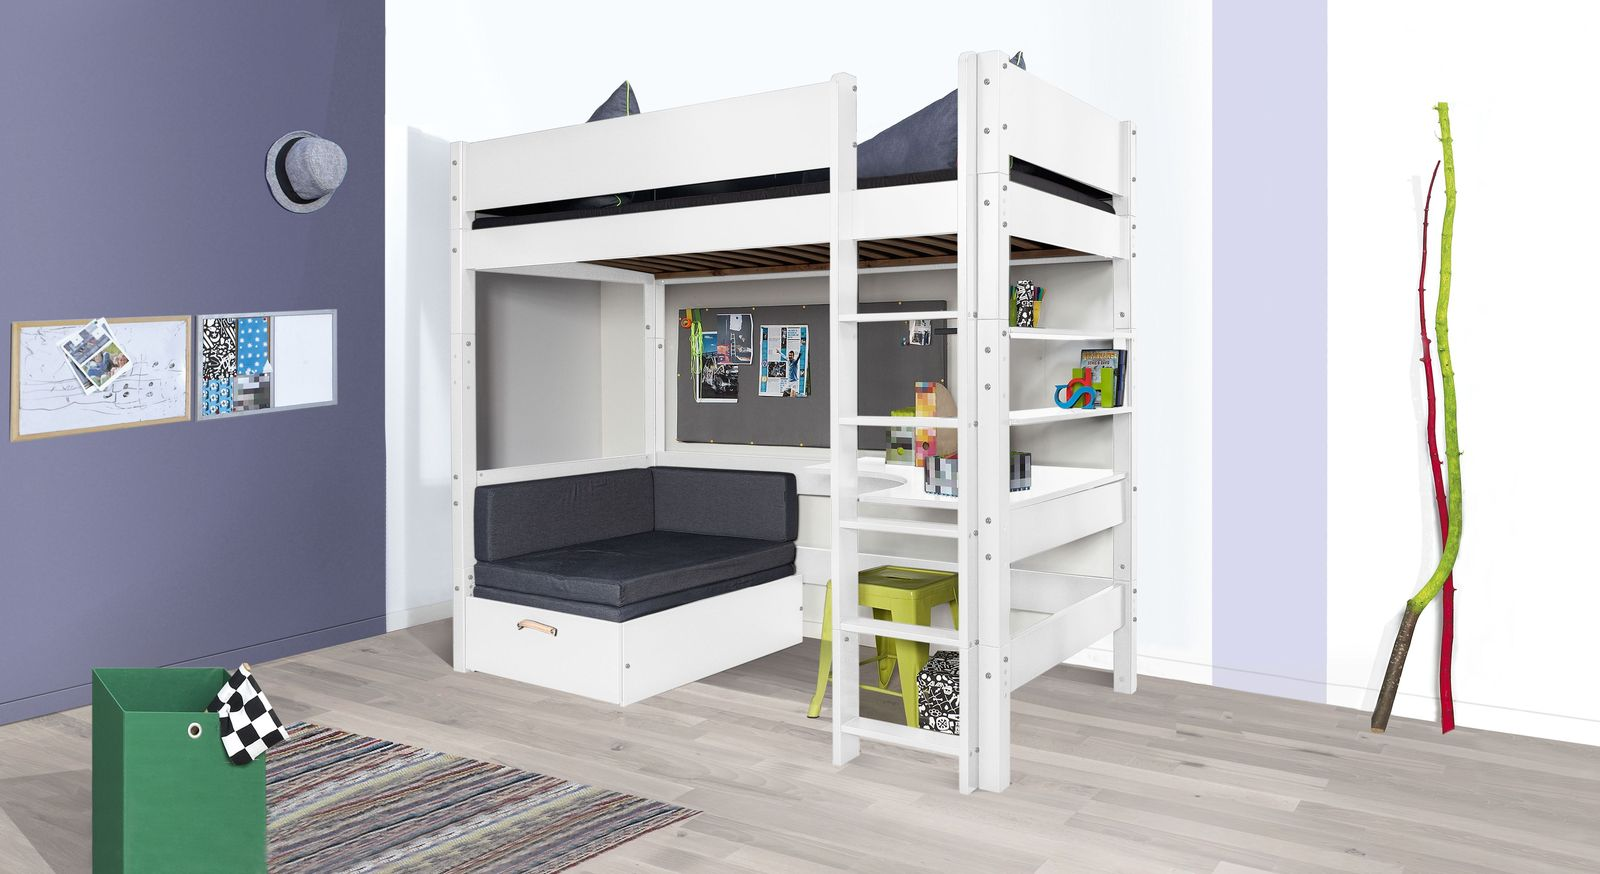 hochbett mit sofa optionalem schreibtisch bestellen kids town. Black Bedroom Furniture Sets. Home Design Ideas